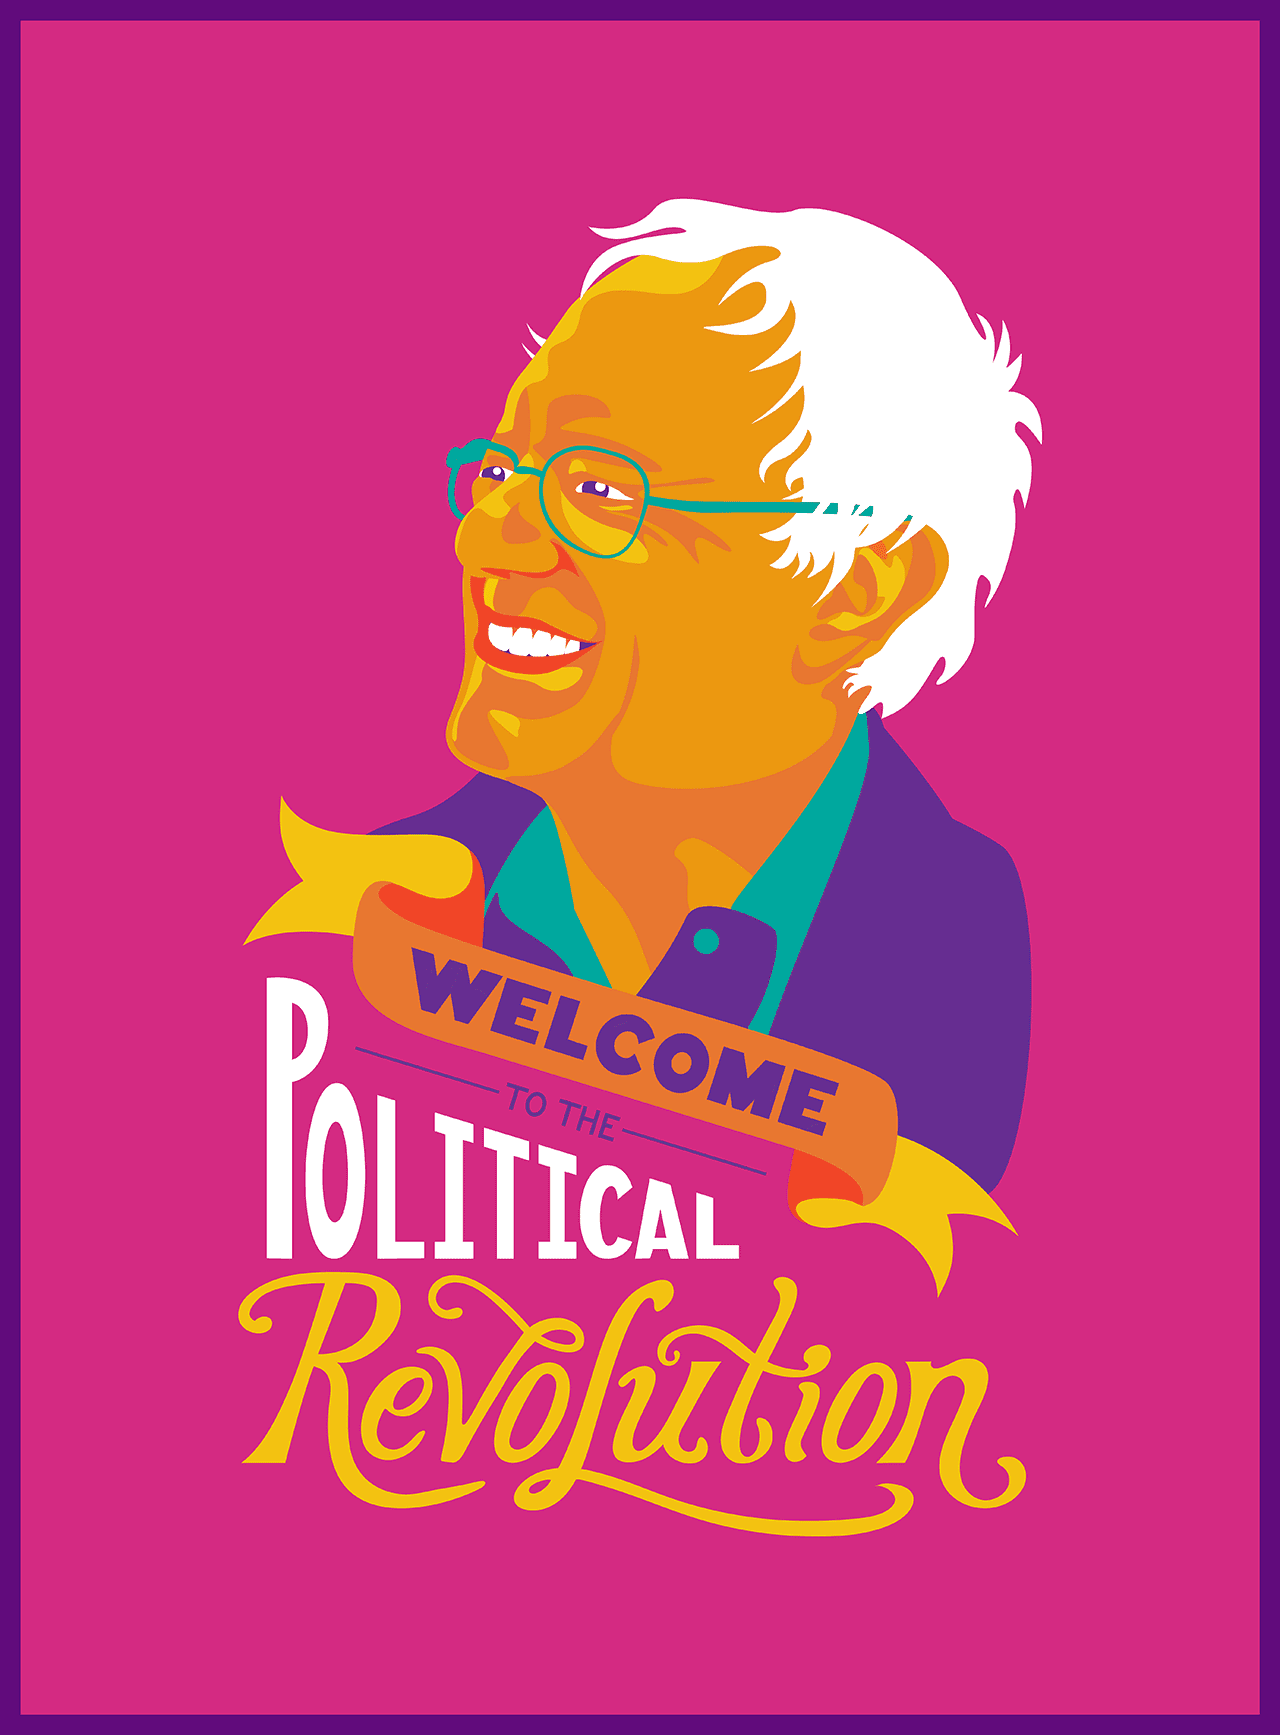 Welcome to the Political Revolution